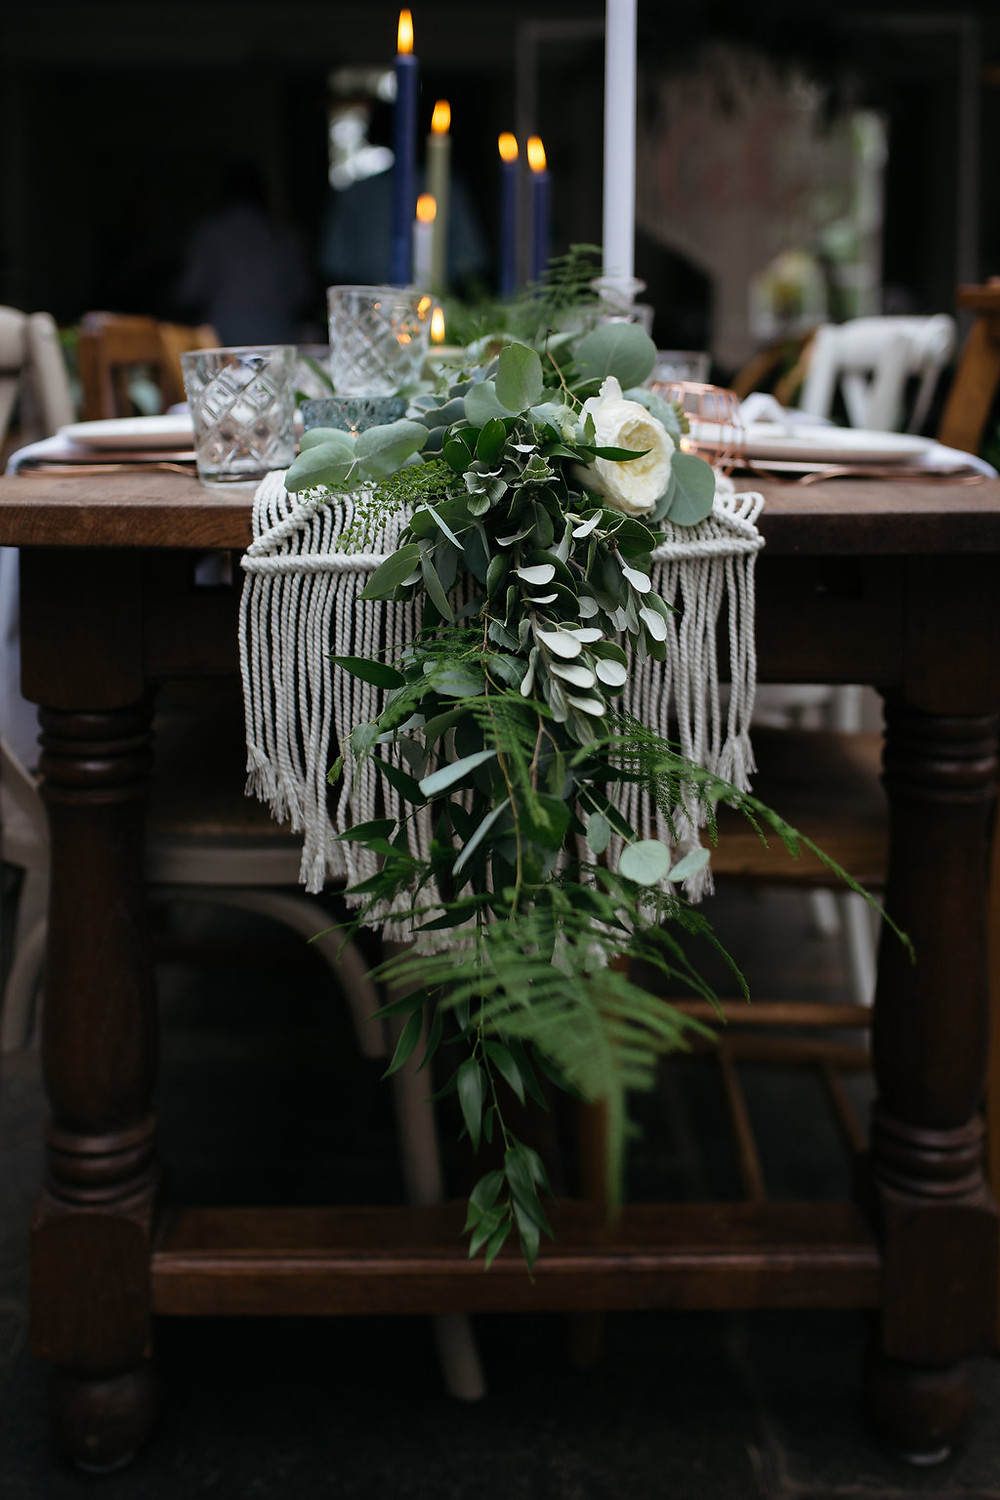 macrame table runner with foliage garland